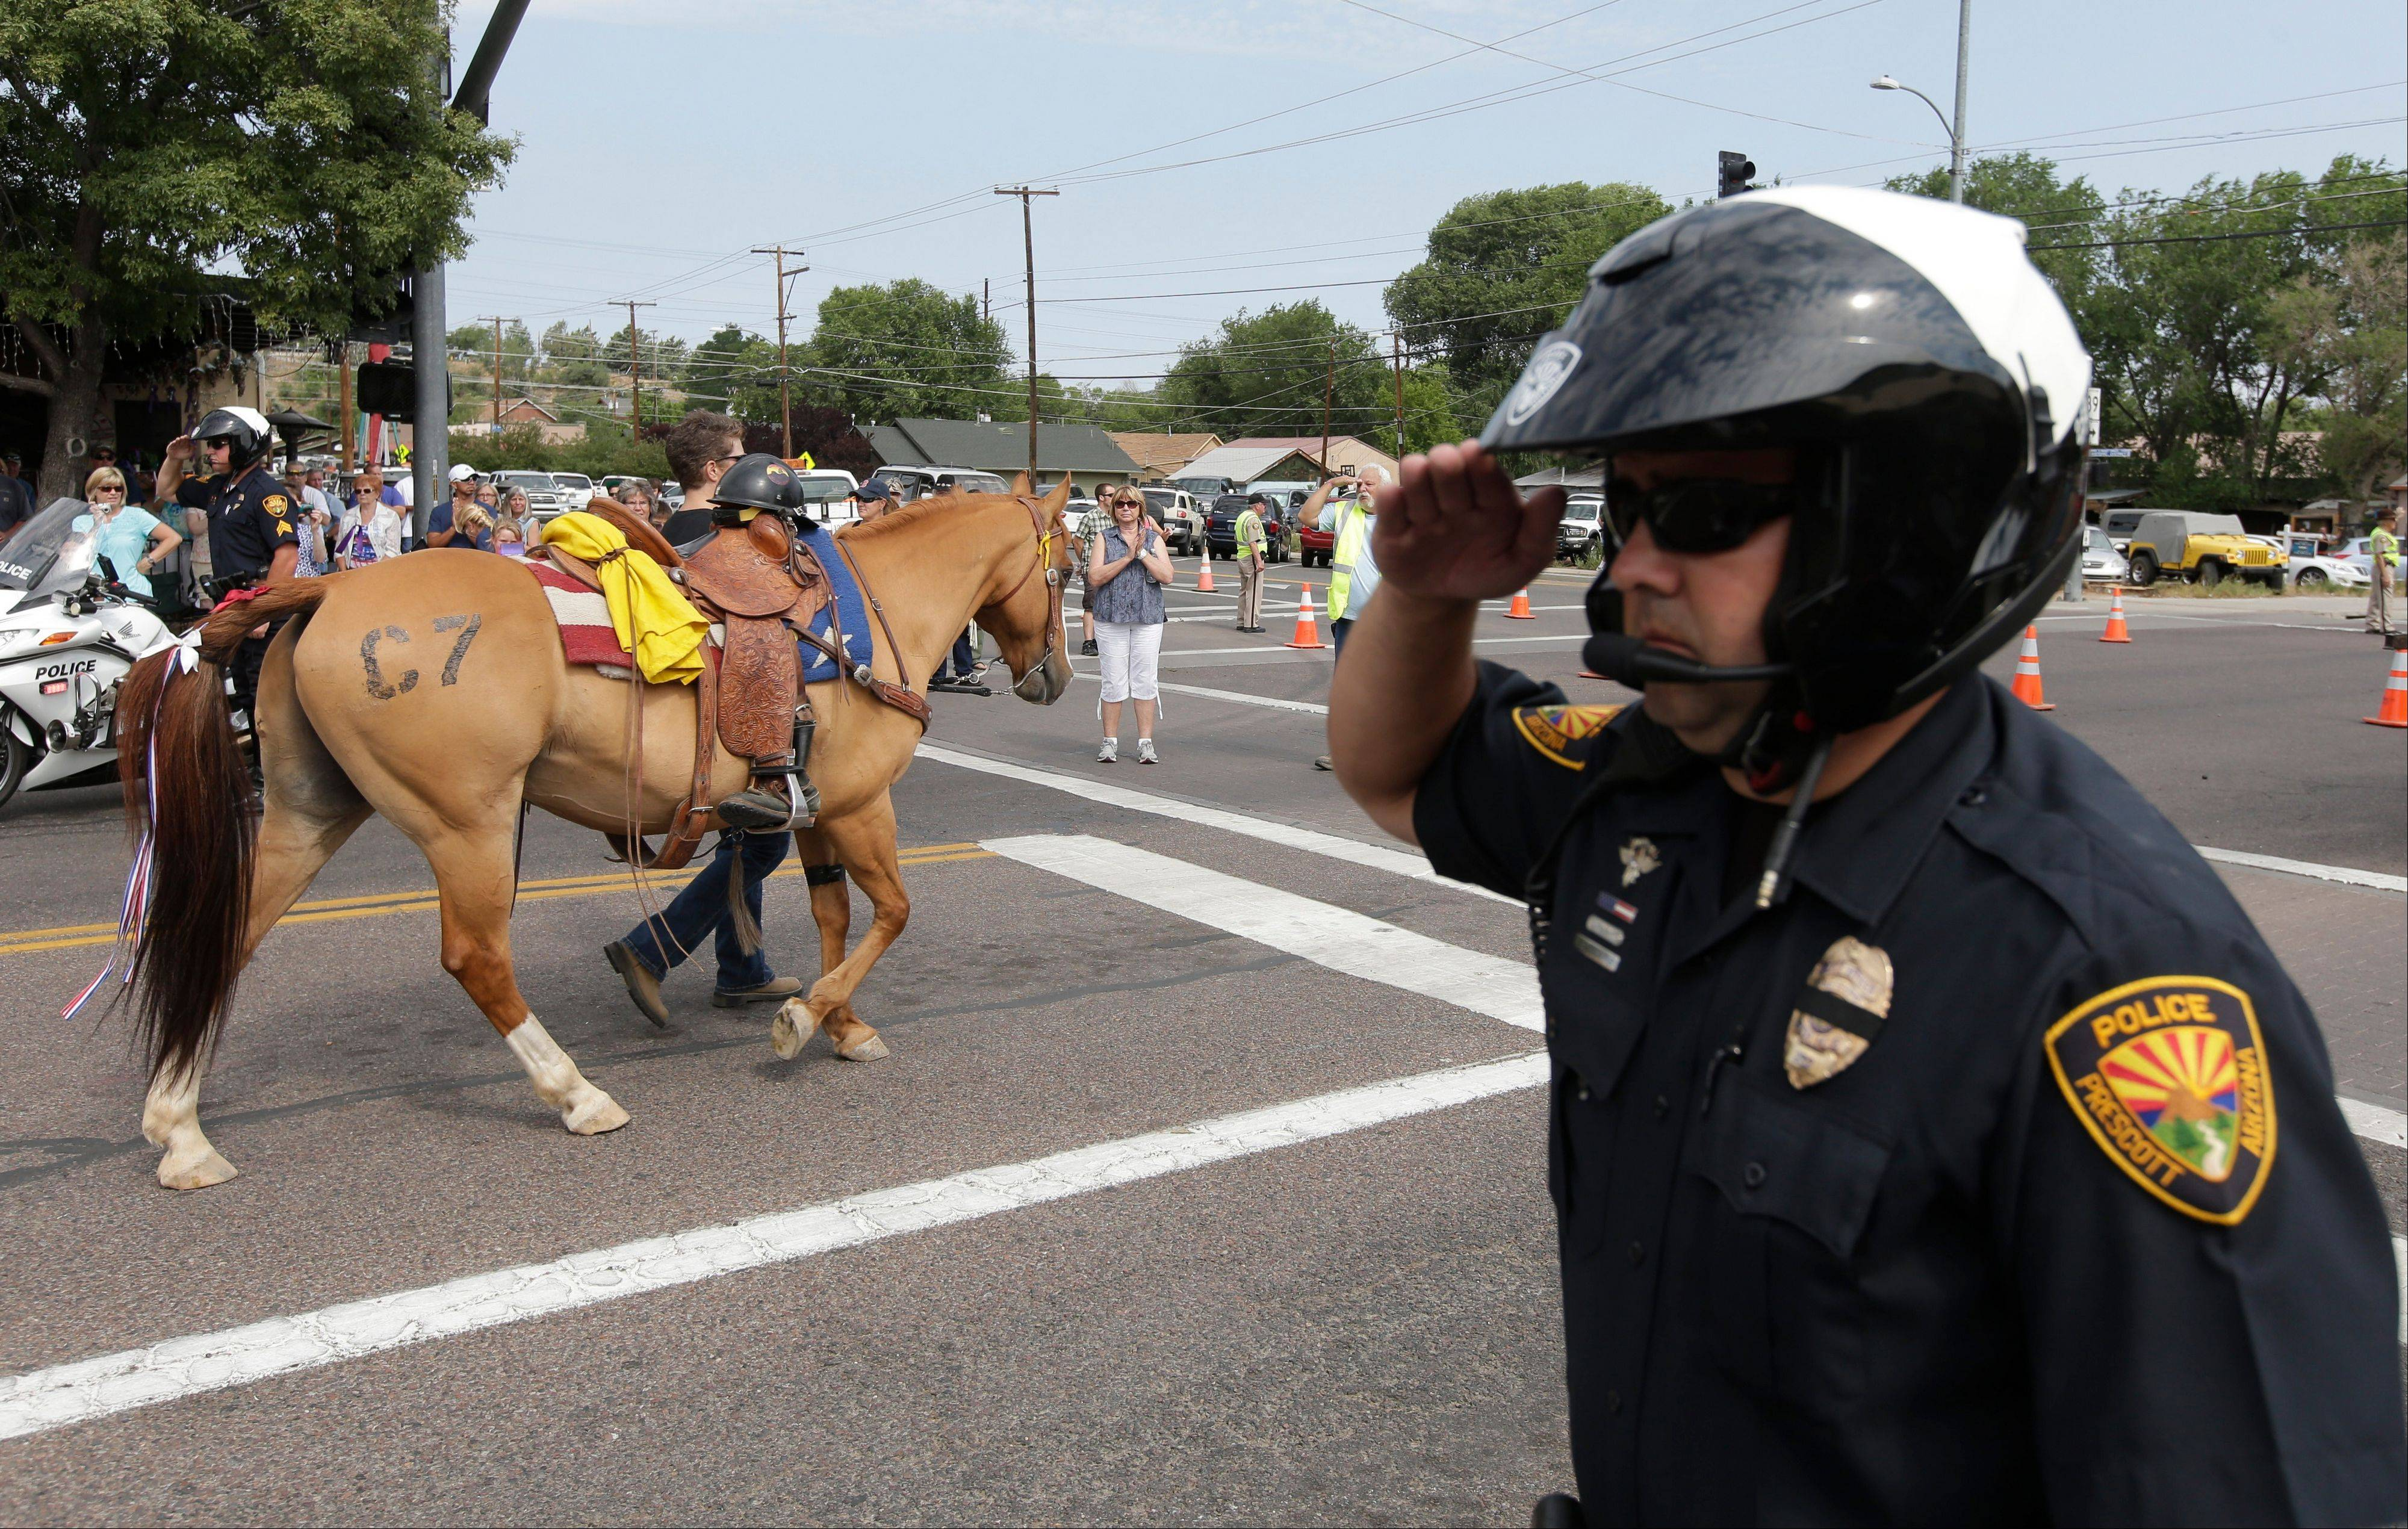 Associated Press Prescott Police Officer Todd Attenberger salutes as a riderless horse for members Granite Mountain Interagency Hotshot Crew walks in Prescott Frontier Days Rodeo Parade Saturday, July 6, in Prescott, Ariz. The firefighters were killed battling a wildfire near Yarnell, Ariz., Sunday, June 30.